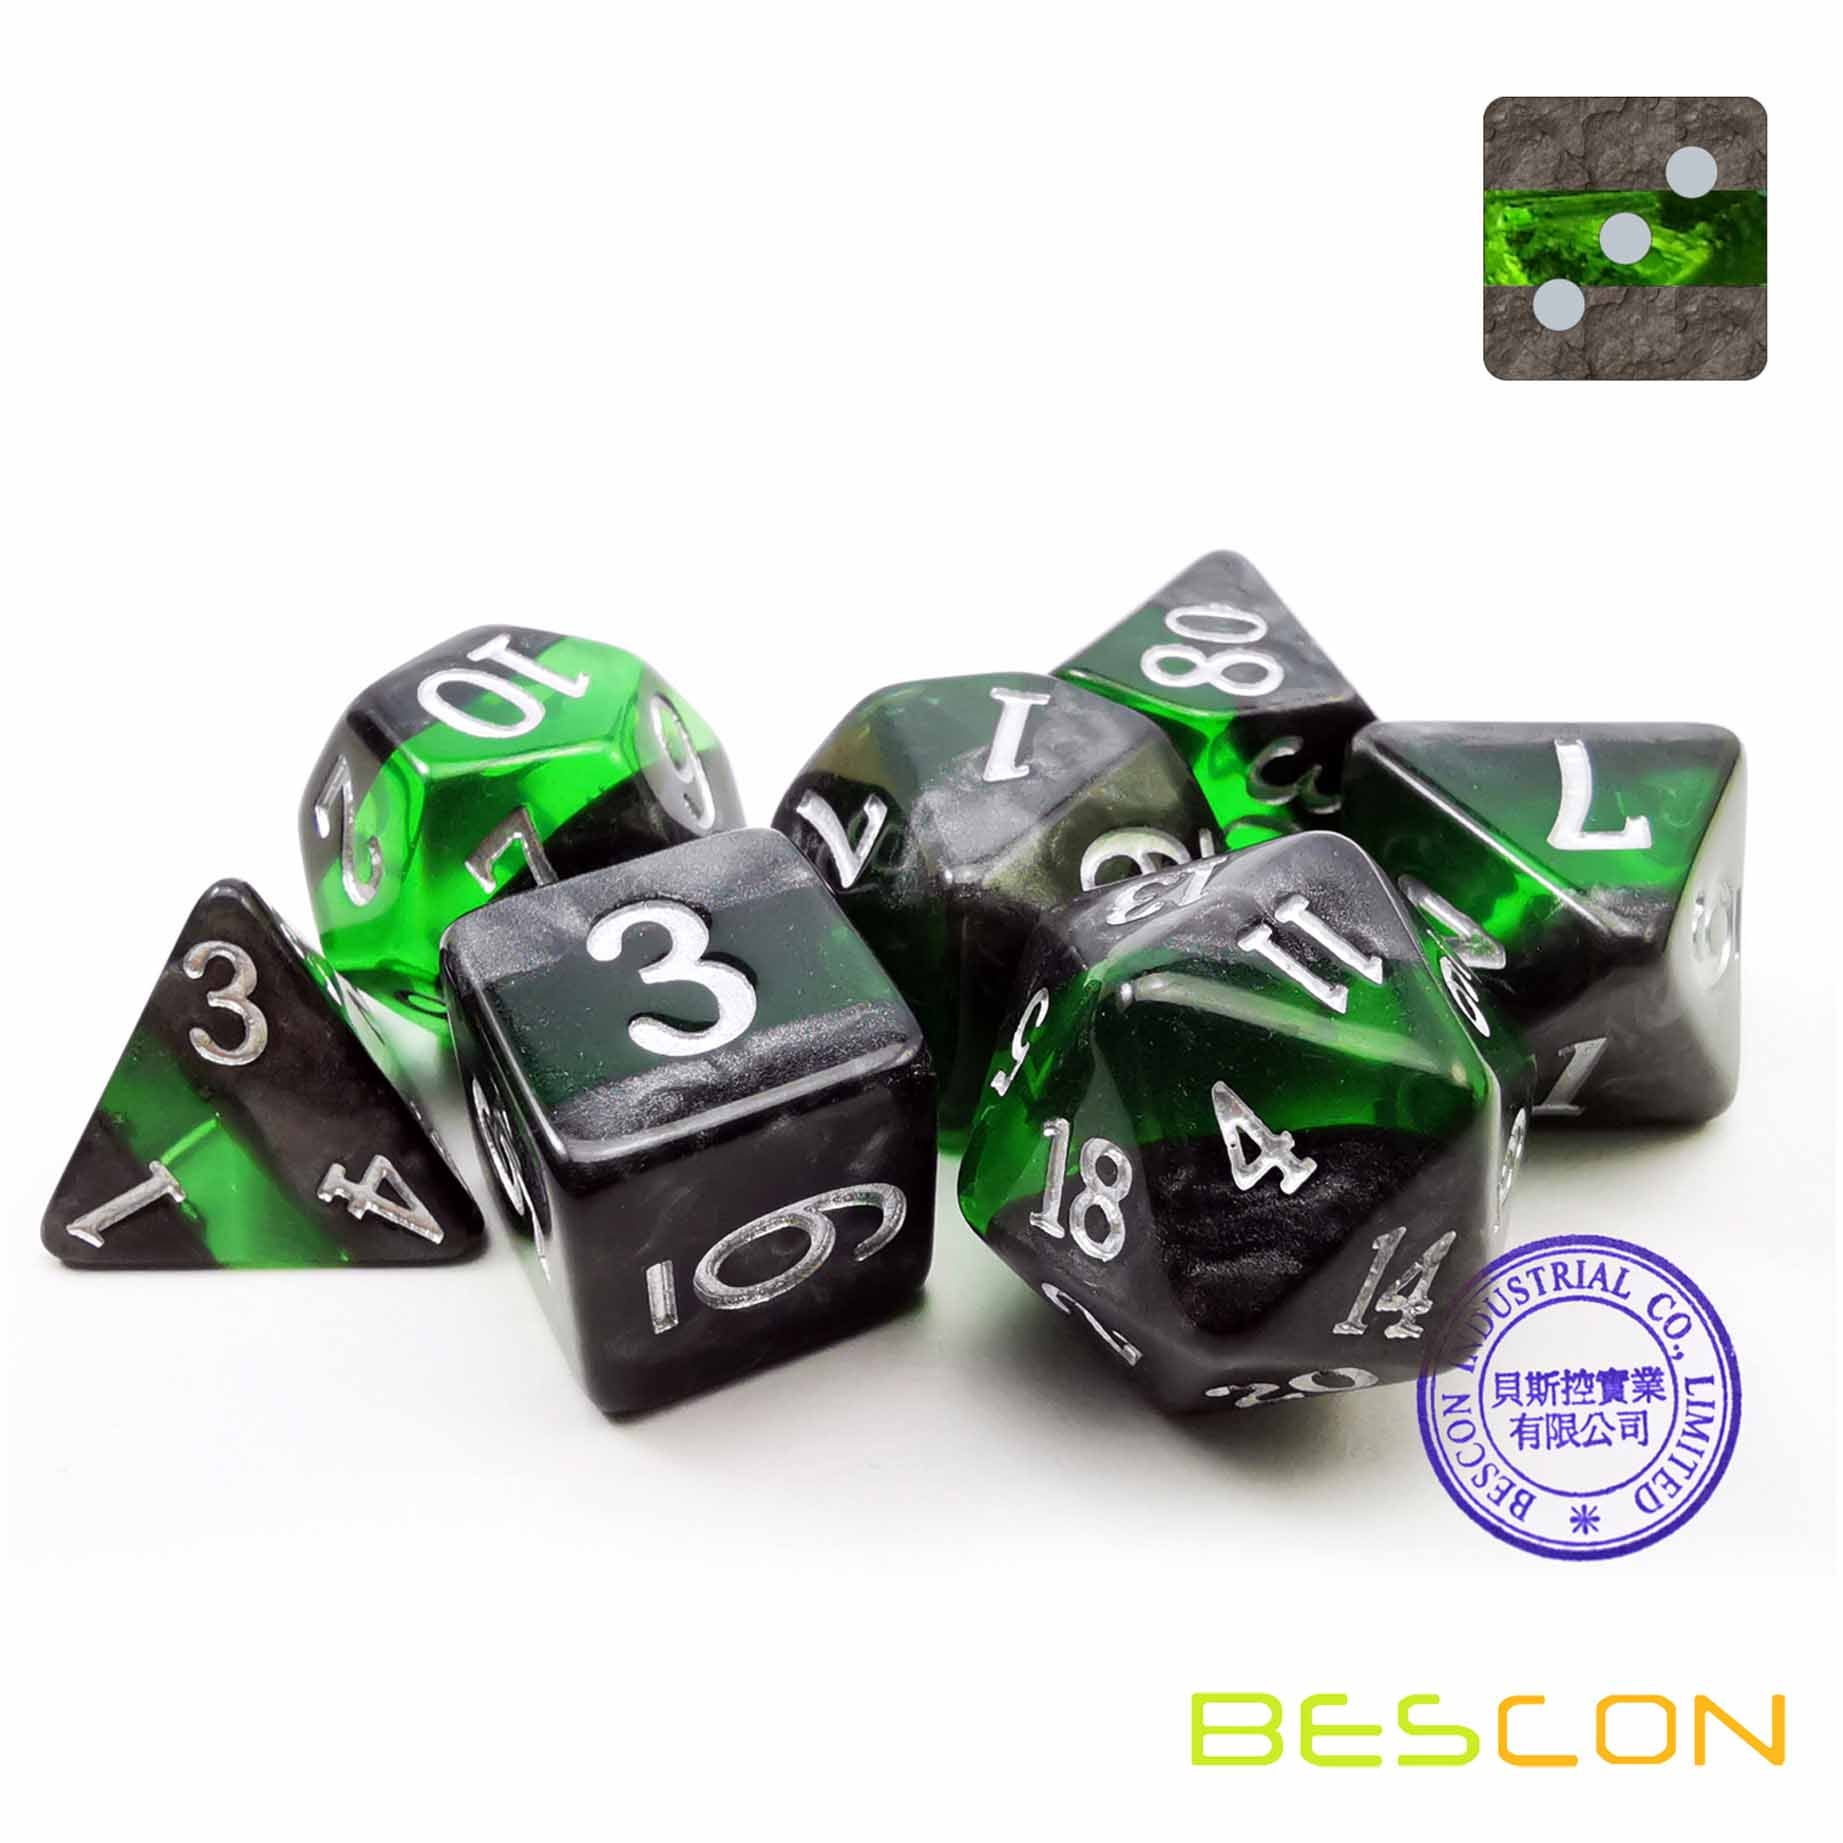 Bescon Dice: Emerald Mineral Rocks Gem Vines Dice Set